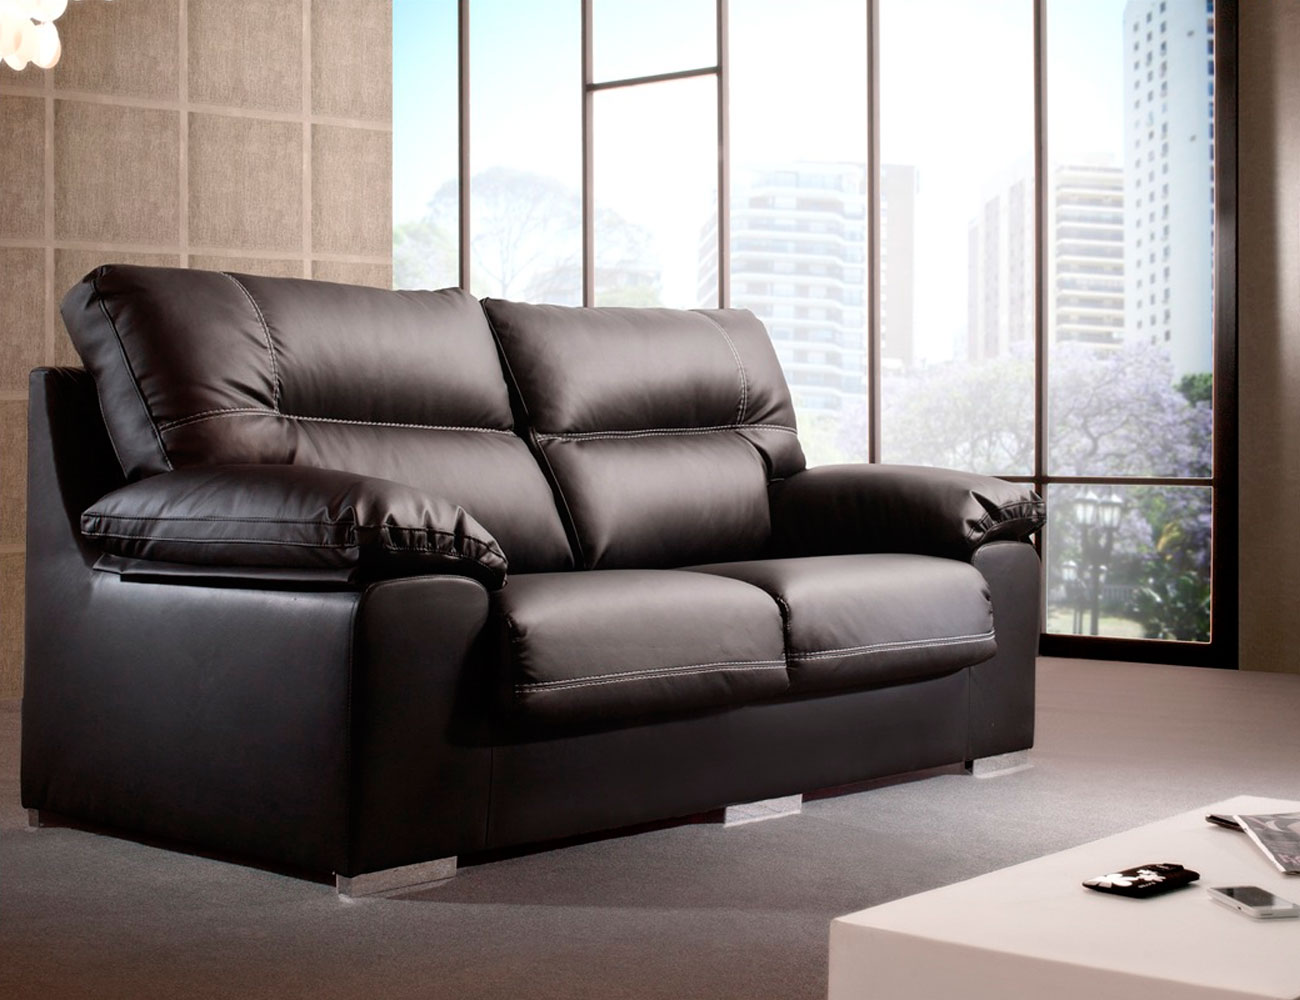 Sofa 3 plazas polipiel negro17